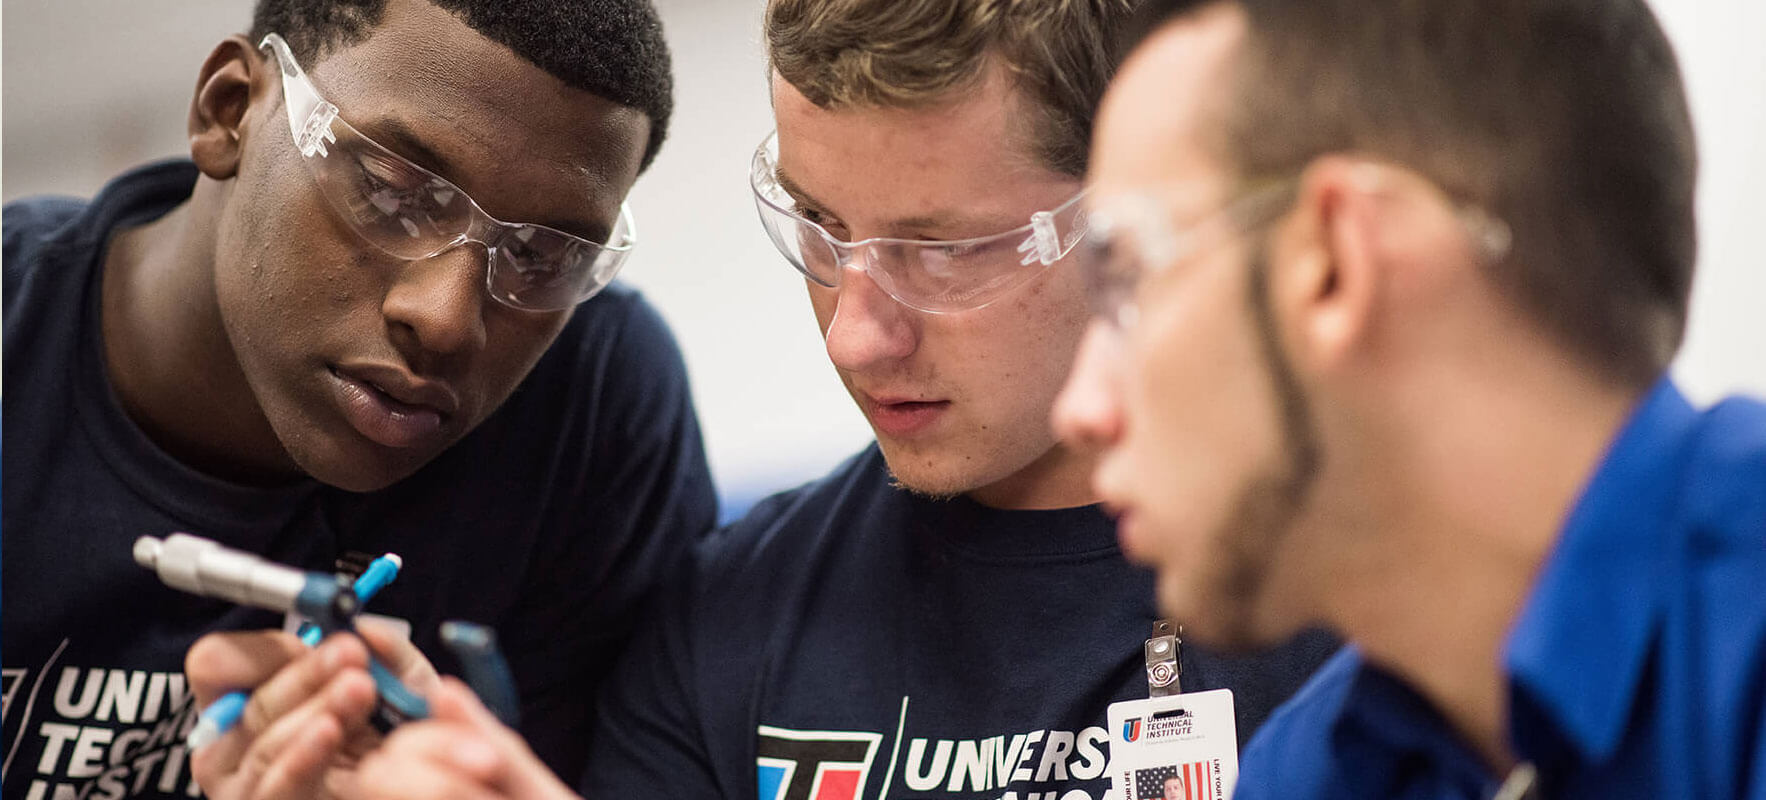 Three students working on automotive components at UTI's Ignite program